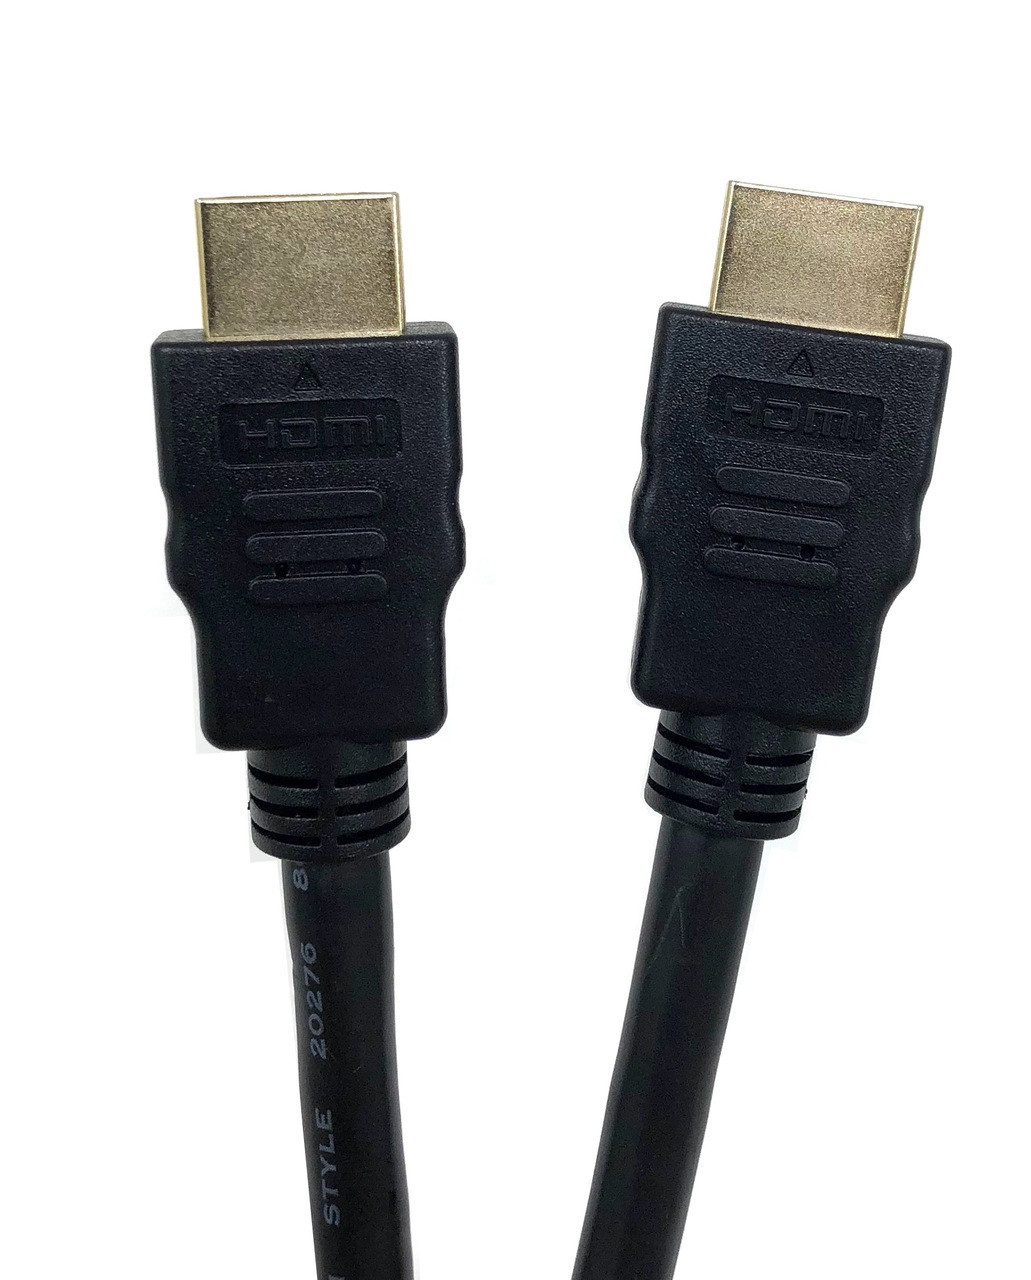 10ft High Speed HDMI M/M Cable with Ethernet